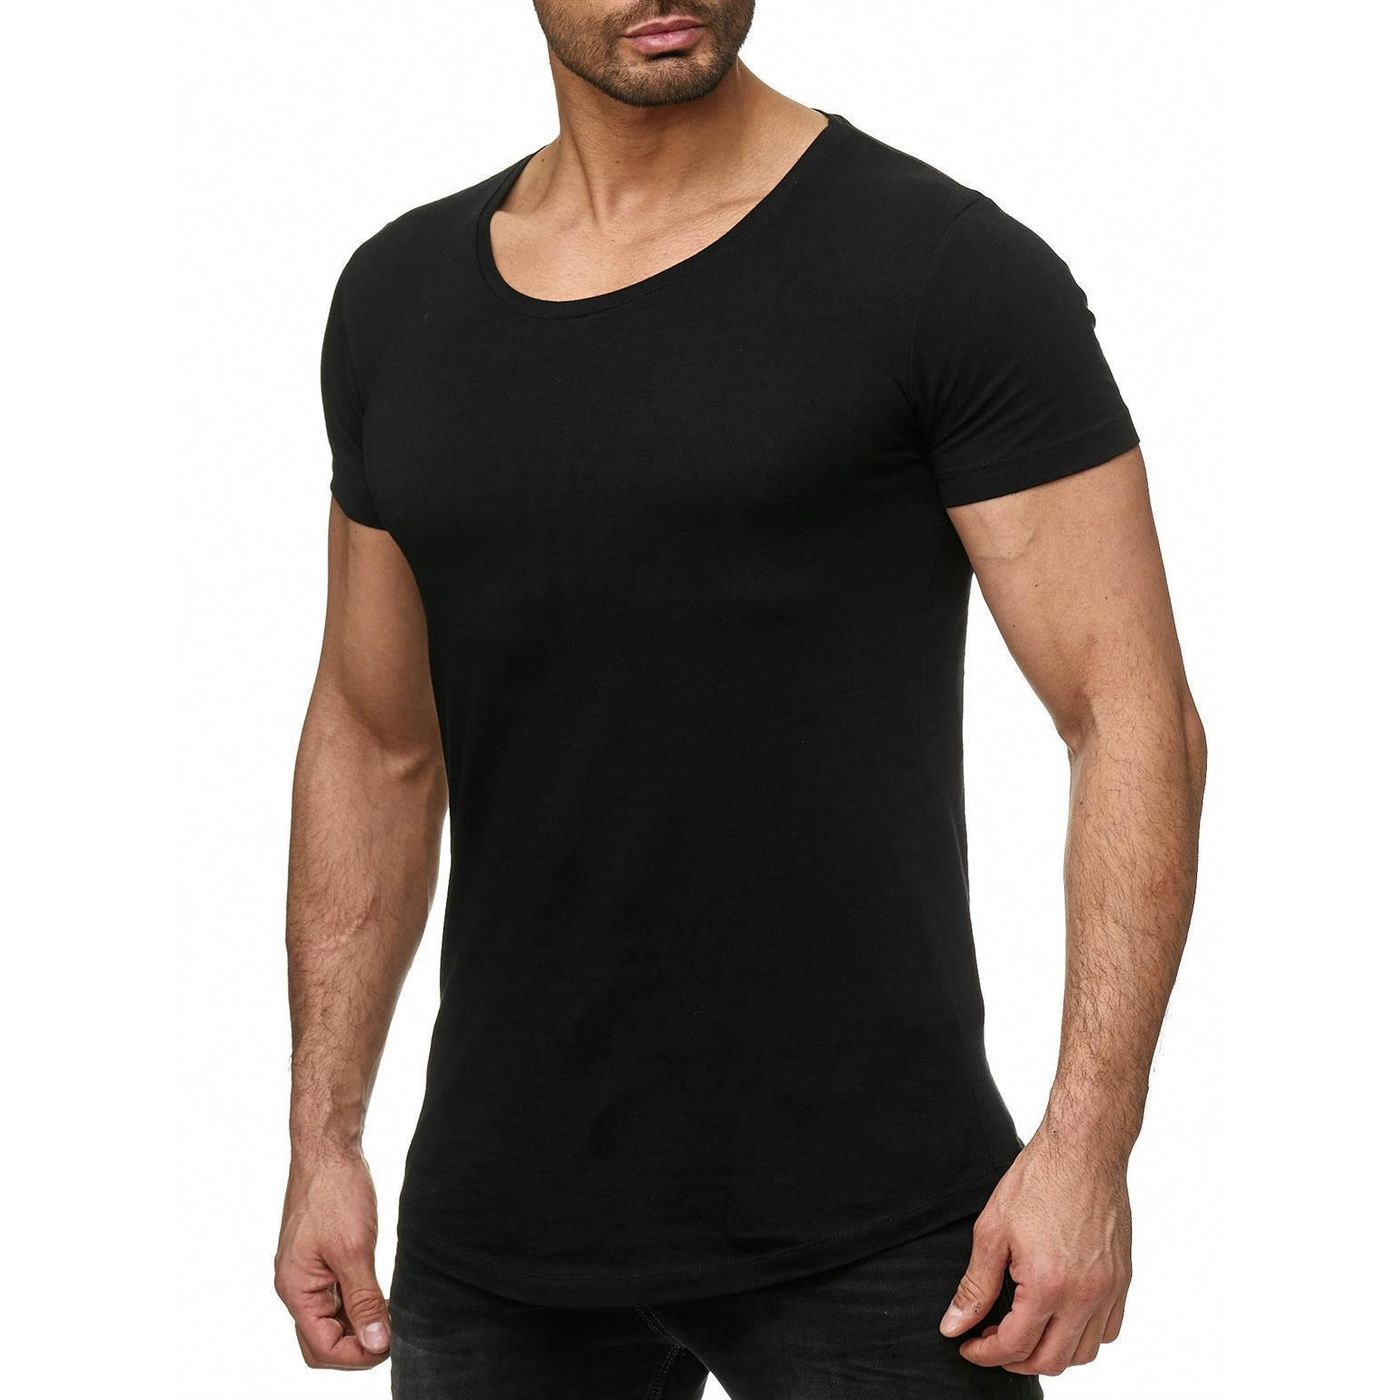 e4b17f6ead011e Red Bridge Men Basic Oversized T-Shirt white M1116-black - Redbridge ...